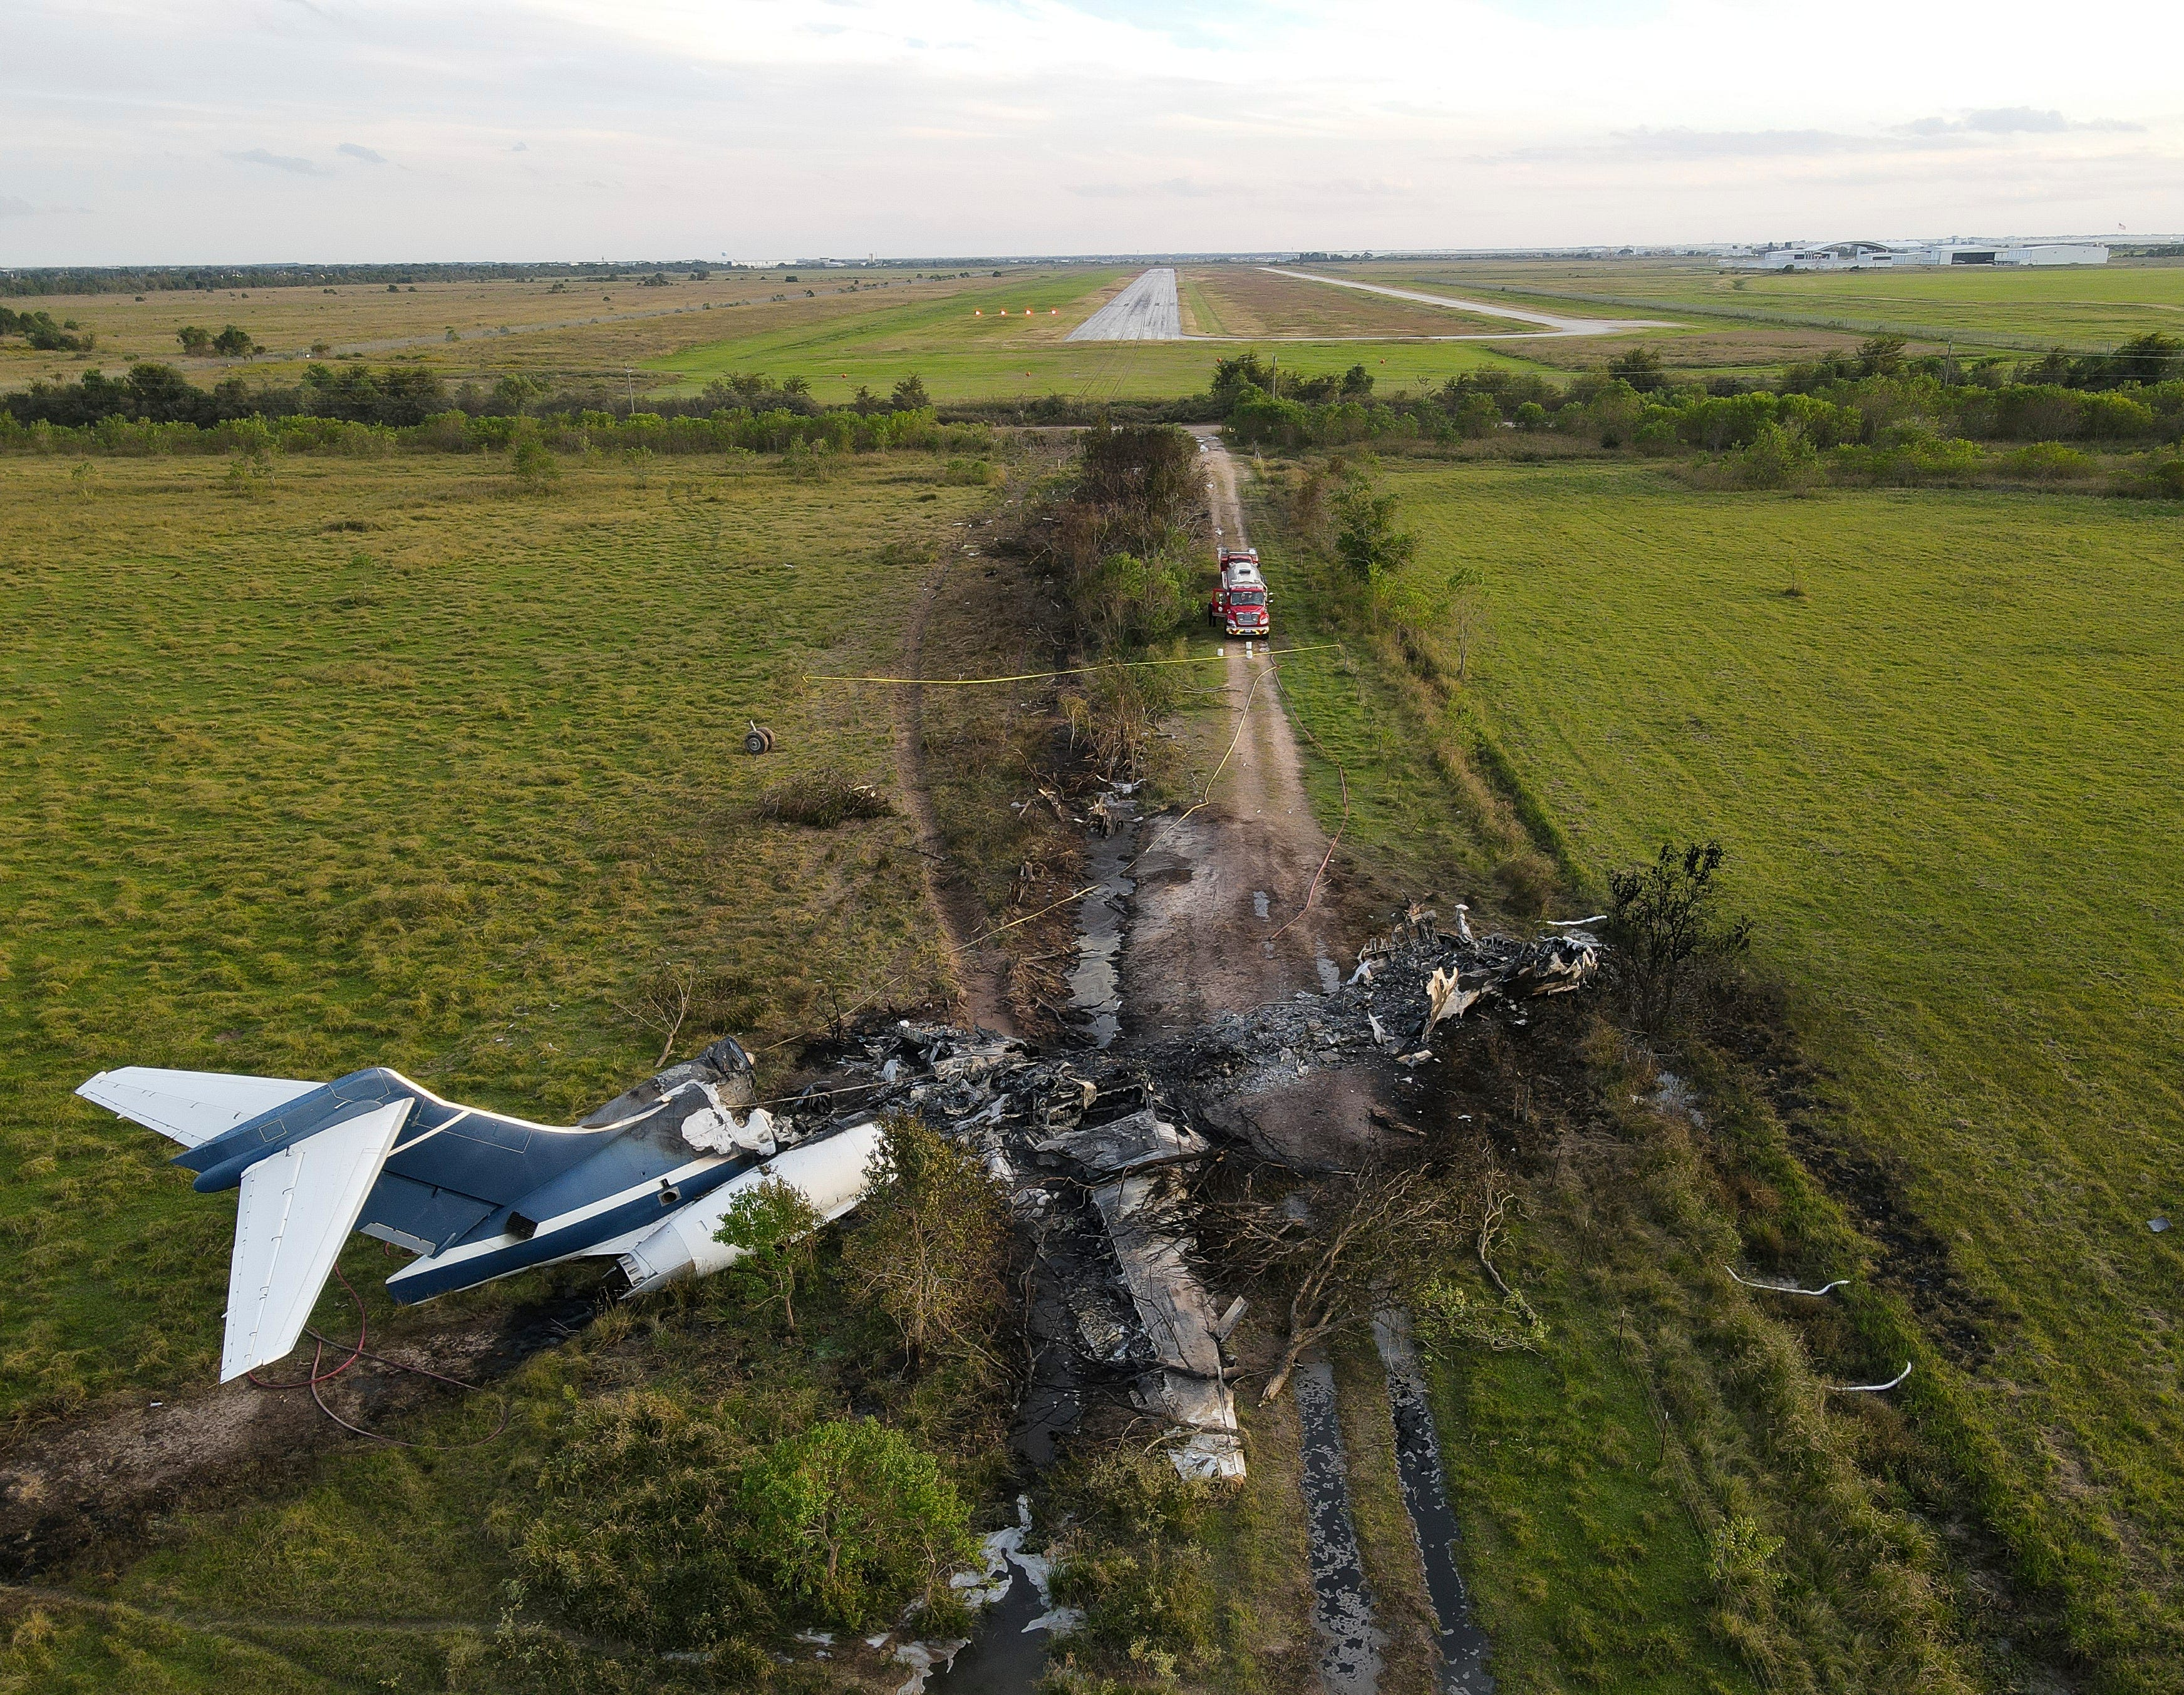 Get out, get out, get out : Everyone survives after plane s  horrific  failed takeoff in Texas